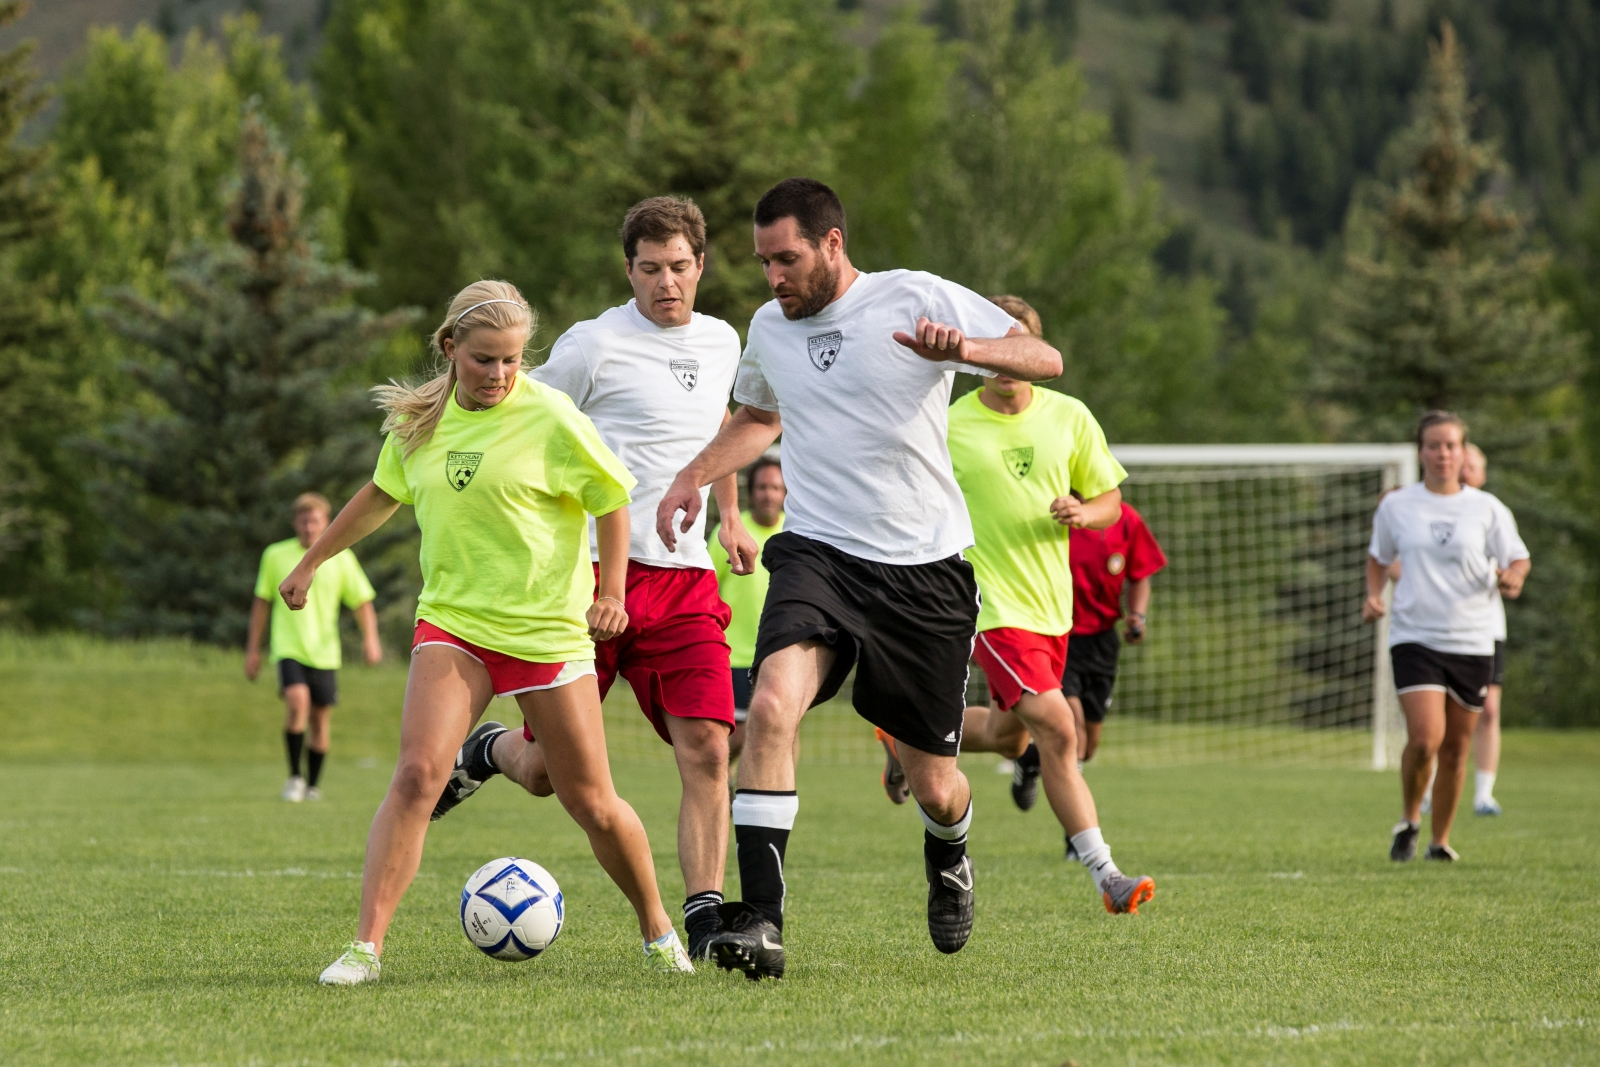 co ed sports teams Open registrations spring 18 co-ed flag football monday novice deadline: 4/ 5/2017 view more play today there are currently no play today requests.